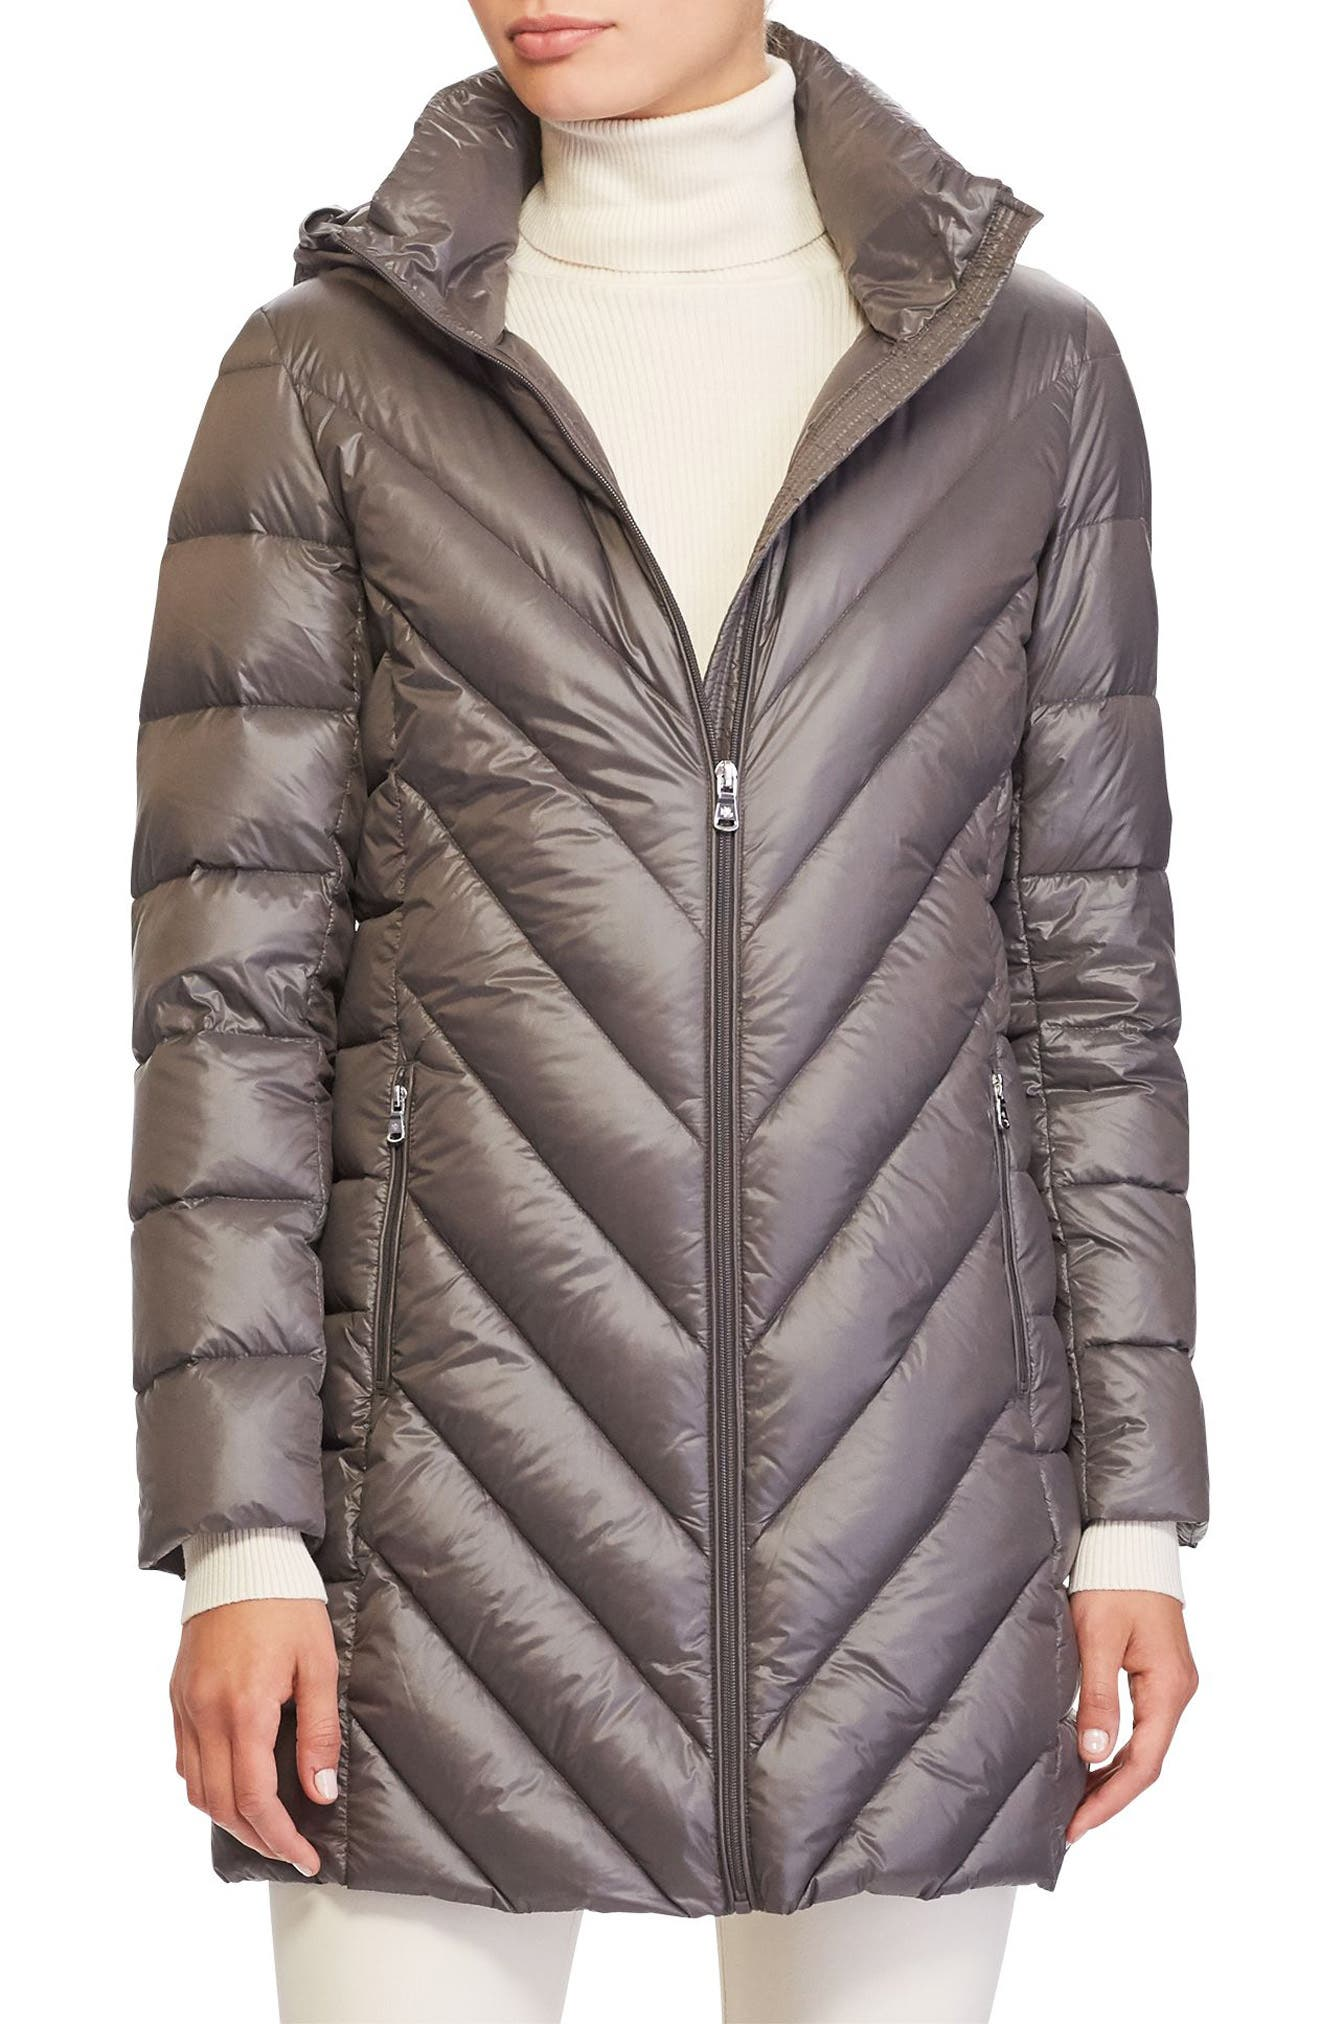 Chevron Quilted Down Jacket,                             Main thumbnail 1, color,                             Concrete